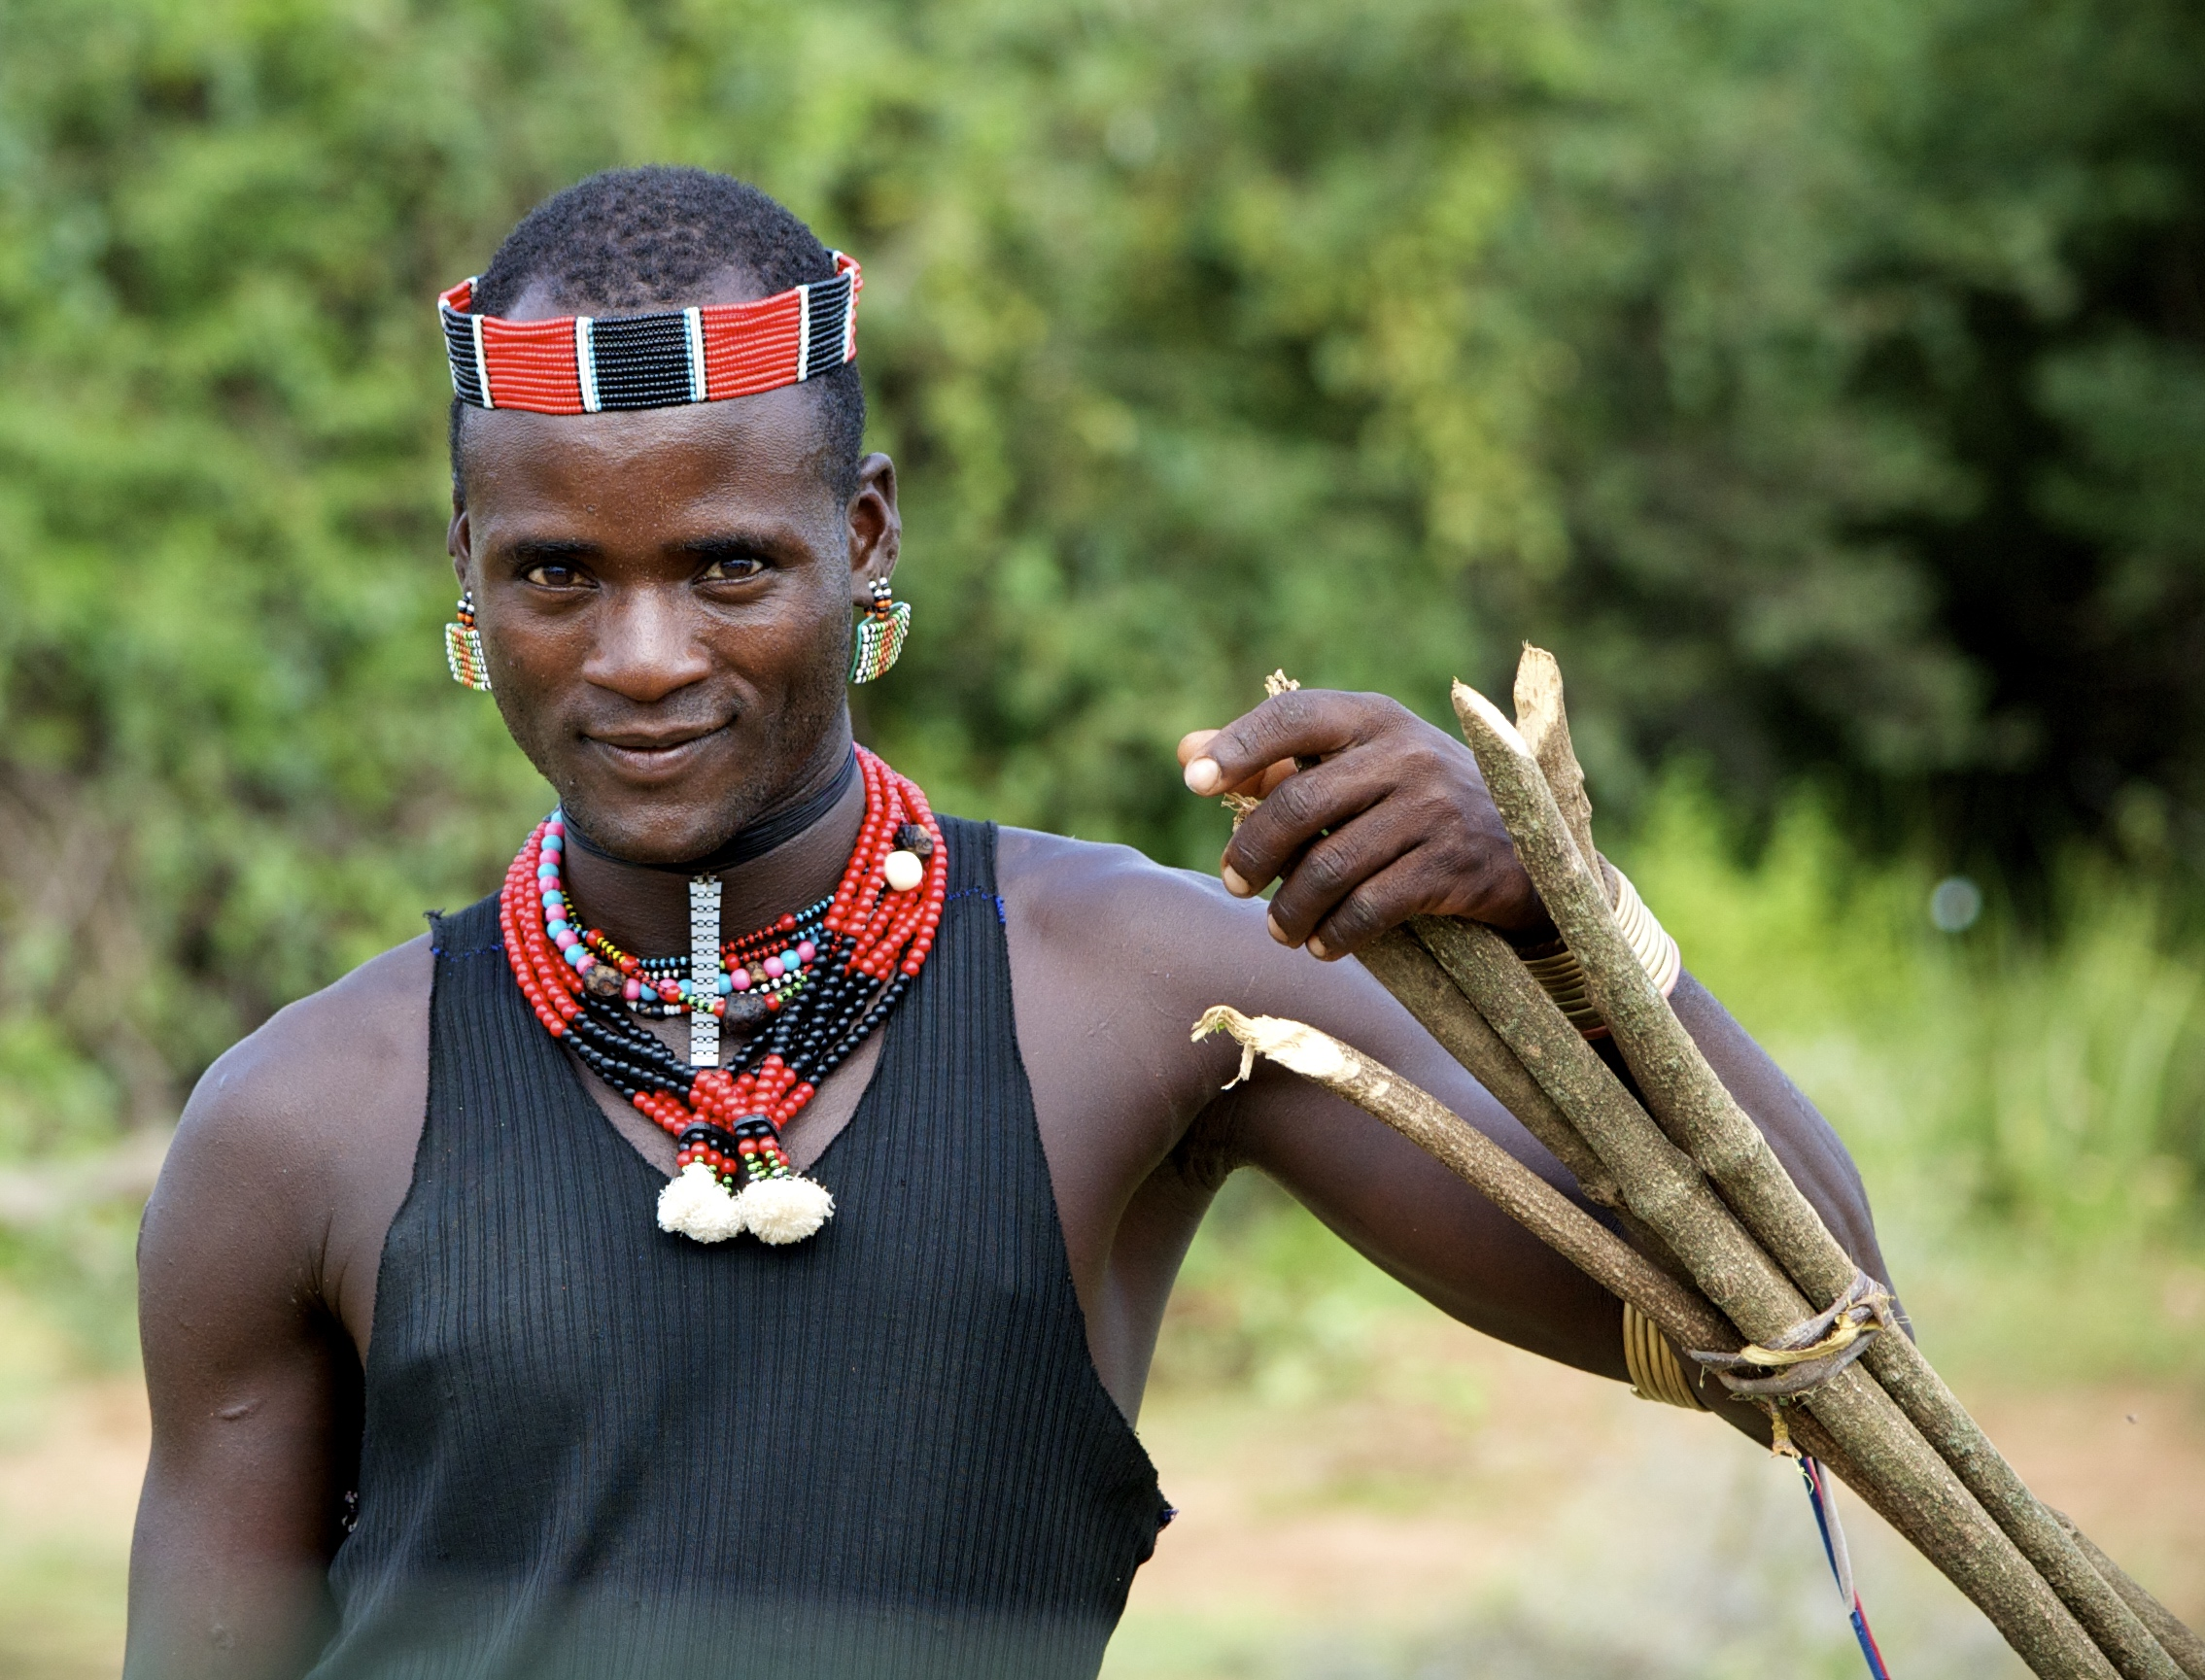 A man helps us on our journey through the Omo Valley